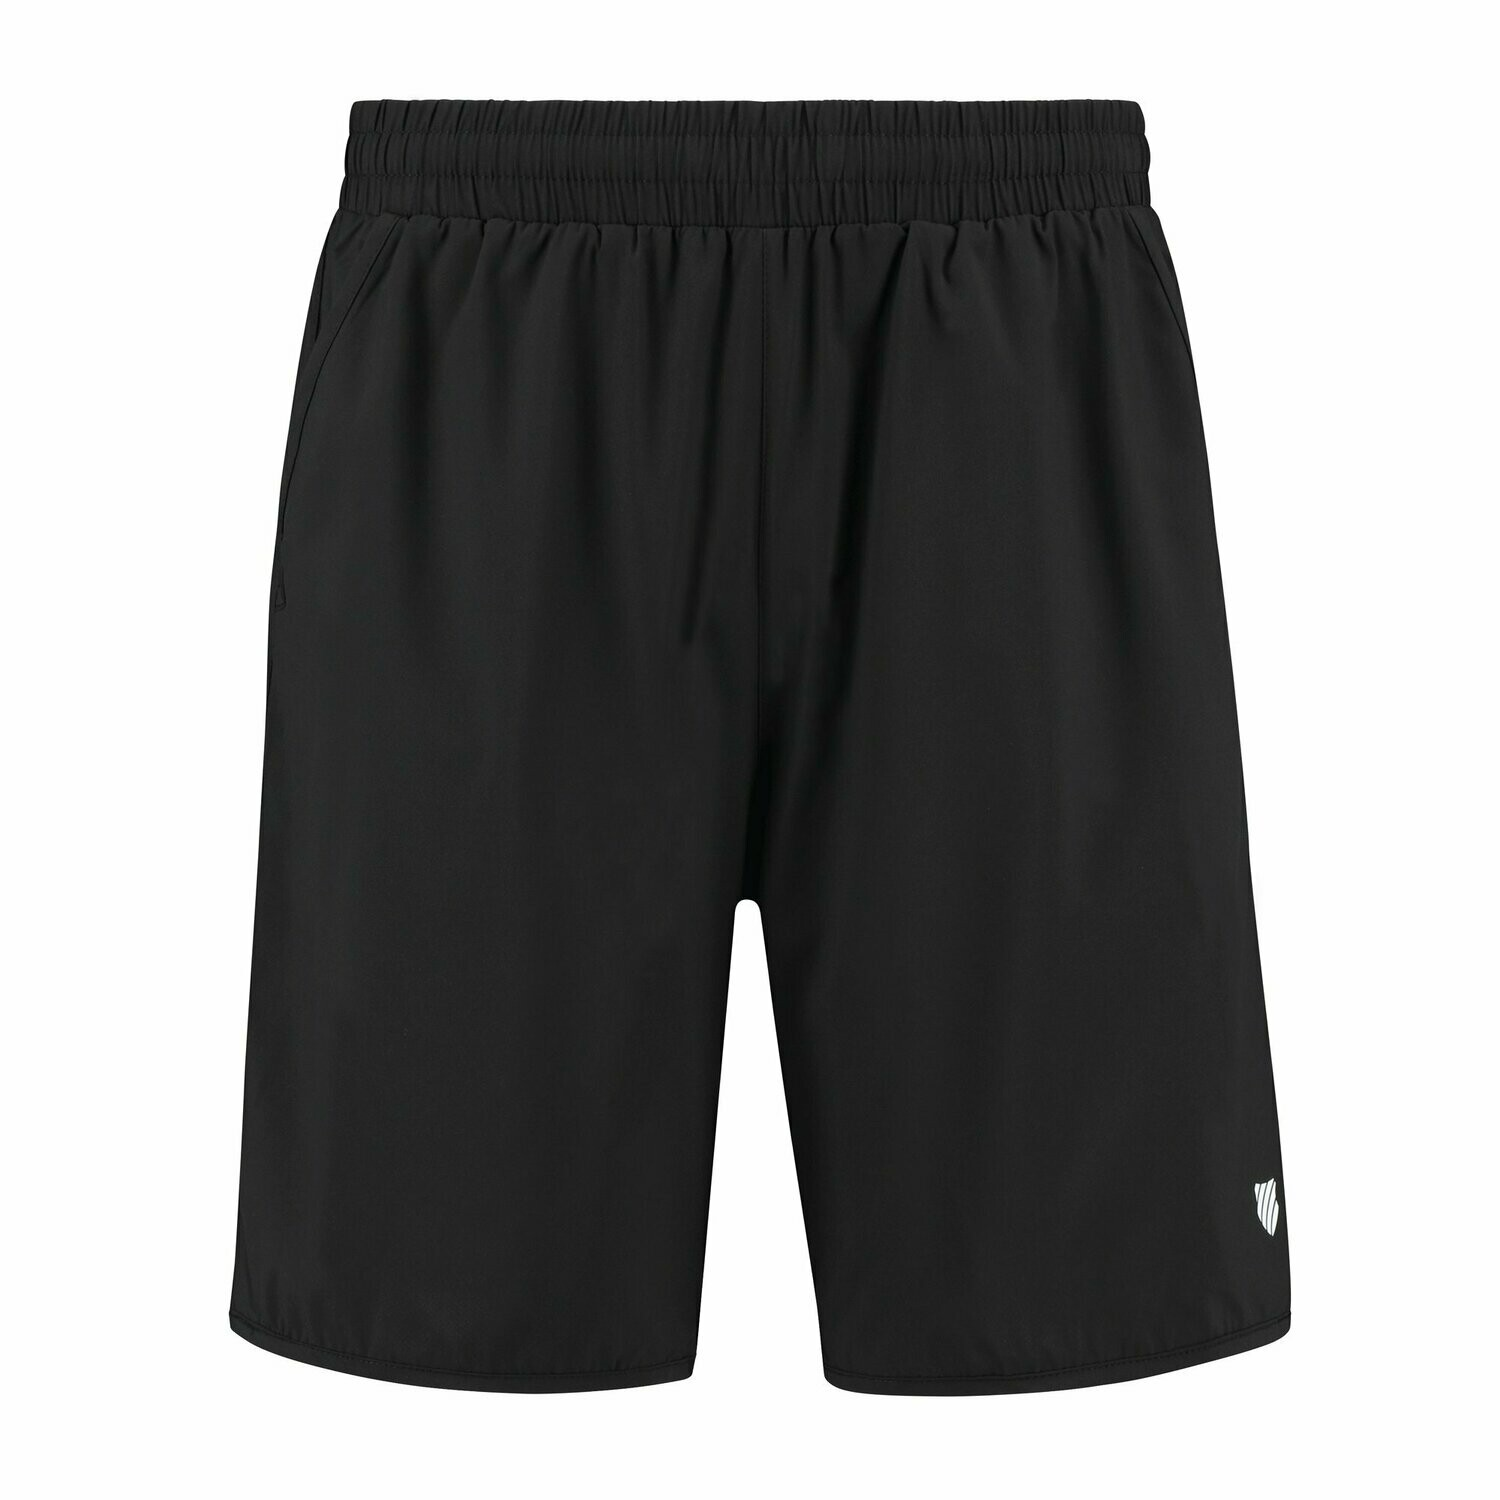 "K-Swiss Hypercourt Express Short 7"" - Limo Black"